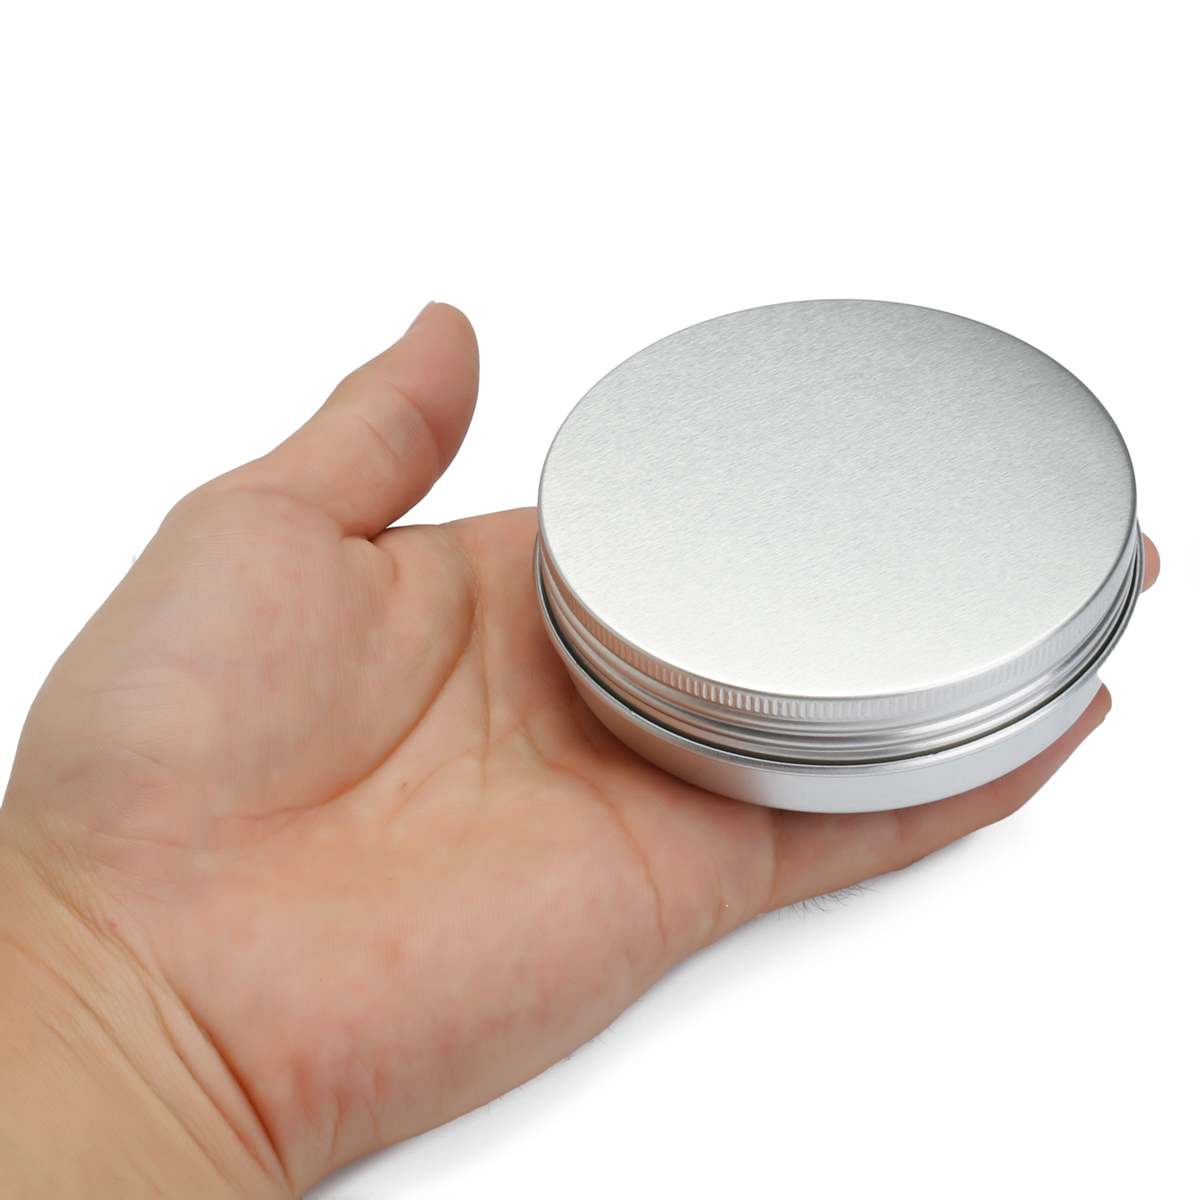 24Pcs 100G Aluminum Round Empty Jar Tin Screw Top Lid Cosmetic Sample Storage Container